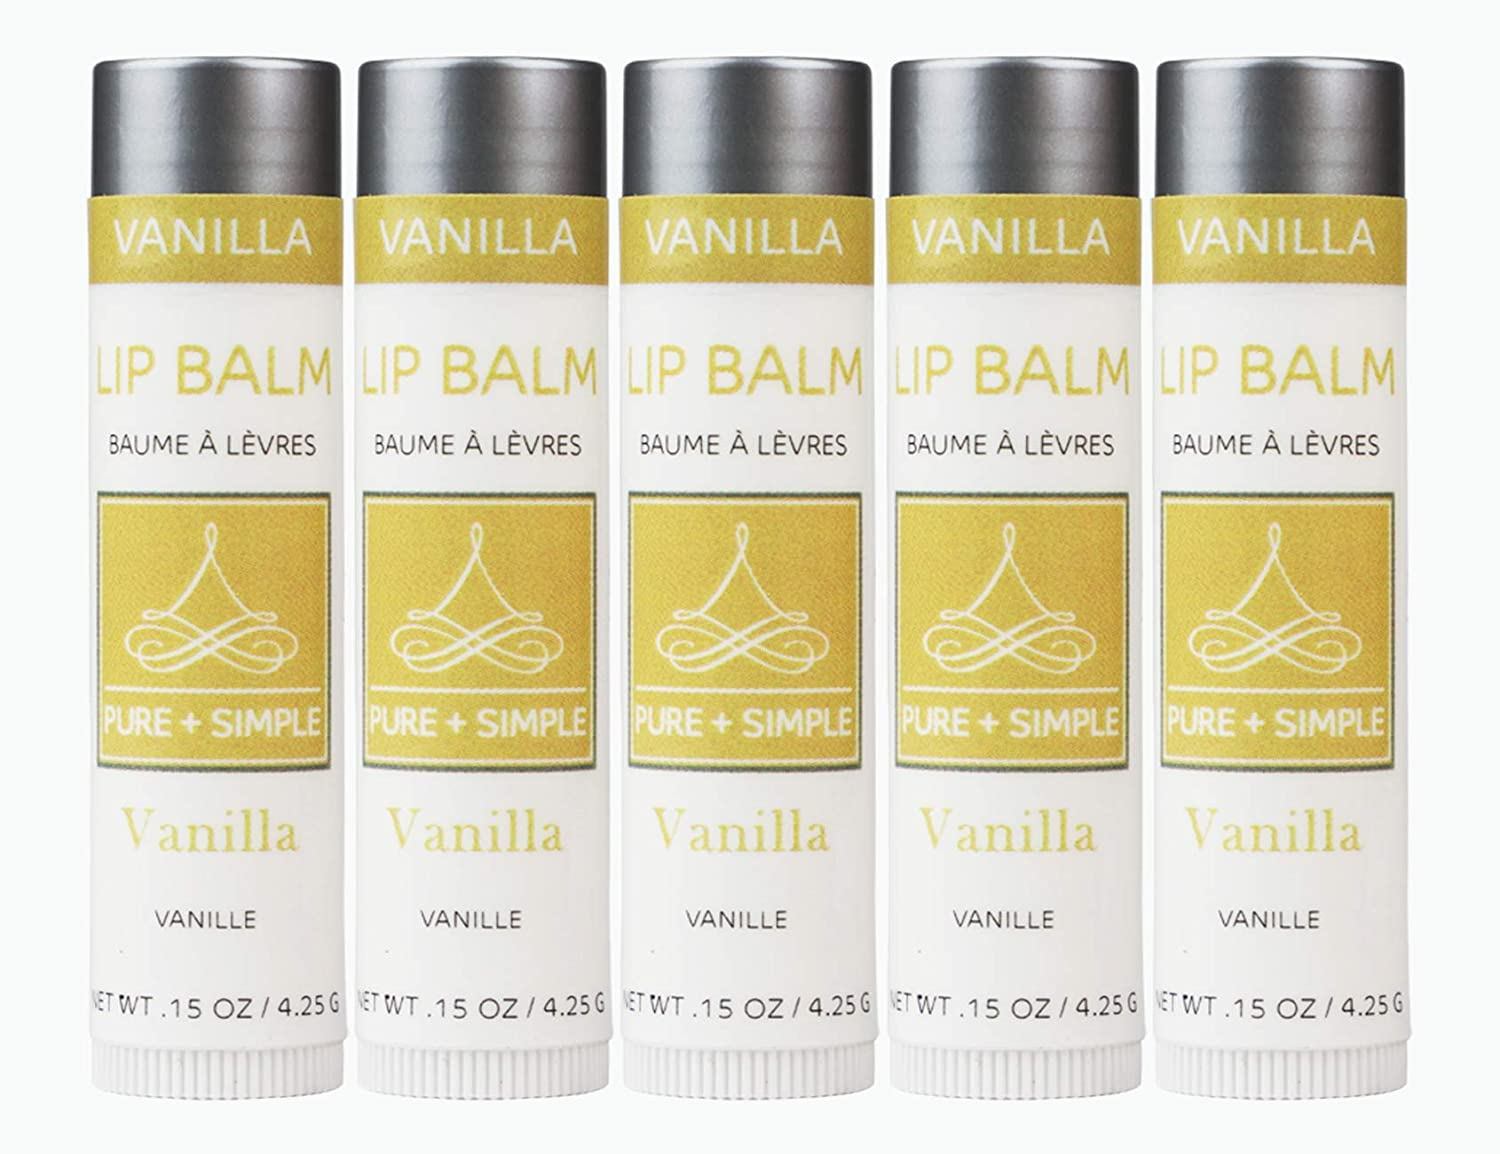 Vegan Lip Balm by PURE + SIMPLE Vanilla Lip Balm Collection, Set of 5 Tubes, Cruelty Free, Beeswax Free, with Avocado Oil, Jojoba Oil, Candelilla Wax, Moisturize Dry, Cracked, or Chapped Lips